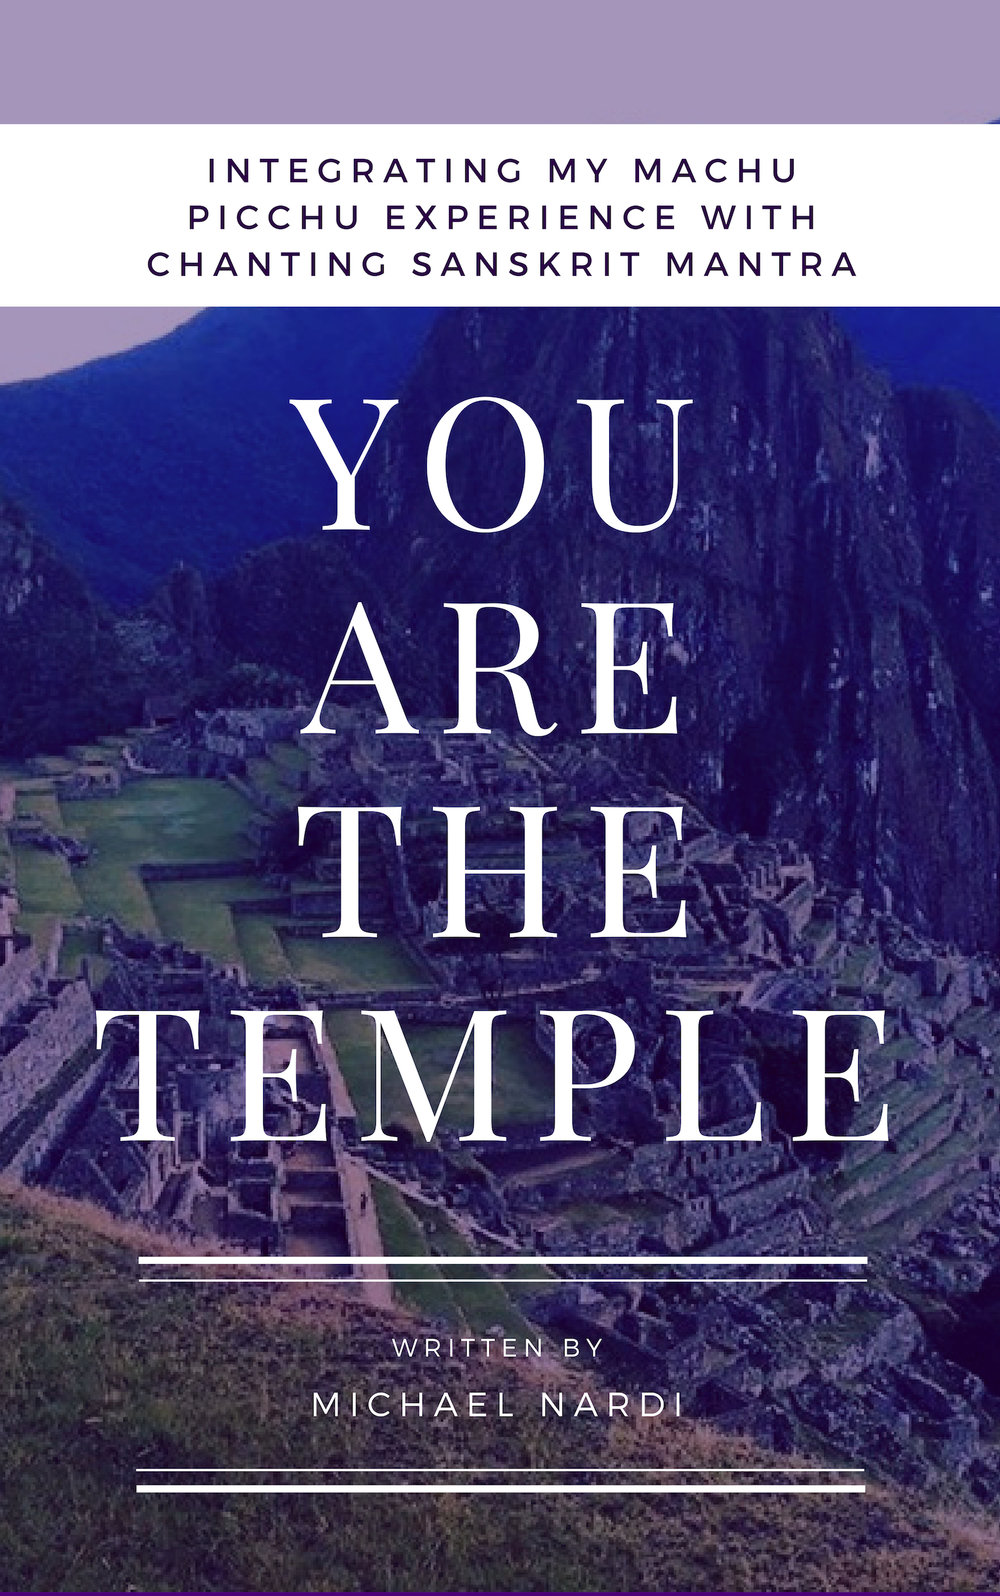 You are the Temple: Integrating My Machu Picchu Experience with Chanting Sanskrit Mantra.jpg